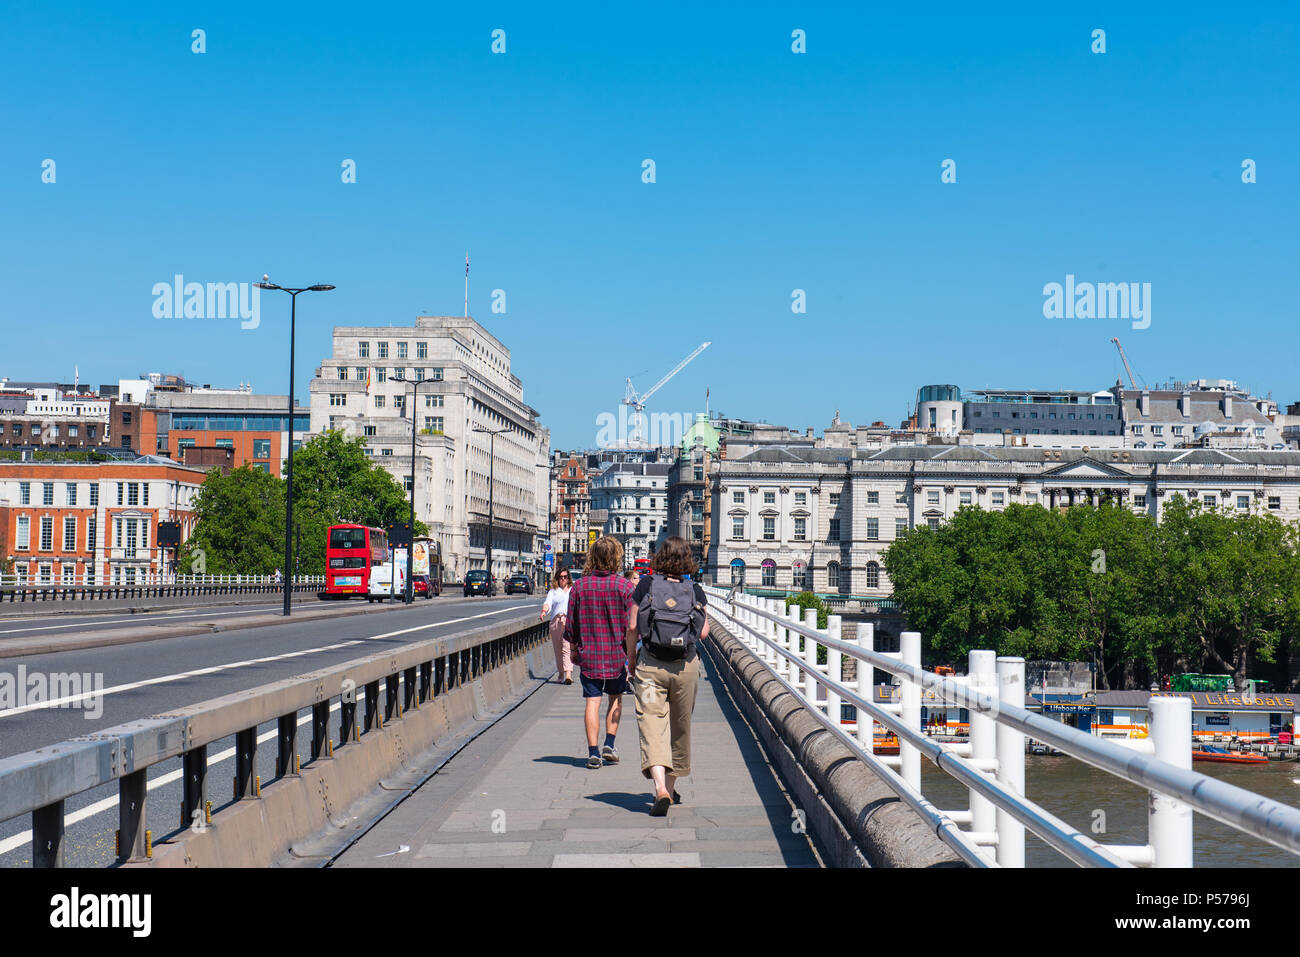 London, UK. 25th June 2018. UK Weather. Hot sun and sweltering heat in Central London. Credit: PQ Images/Alamy - Stock Image